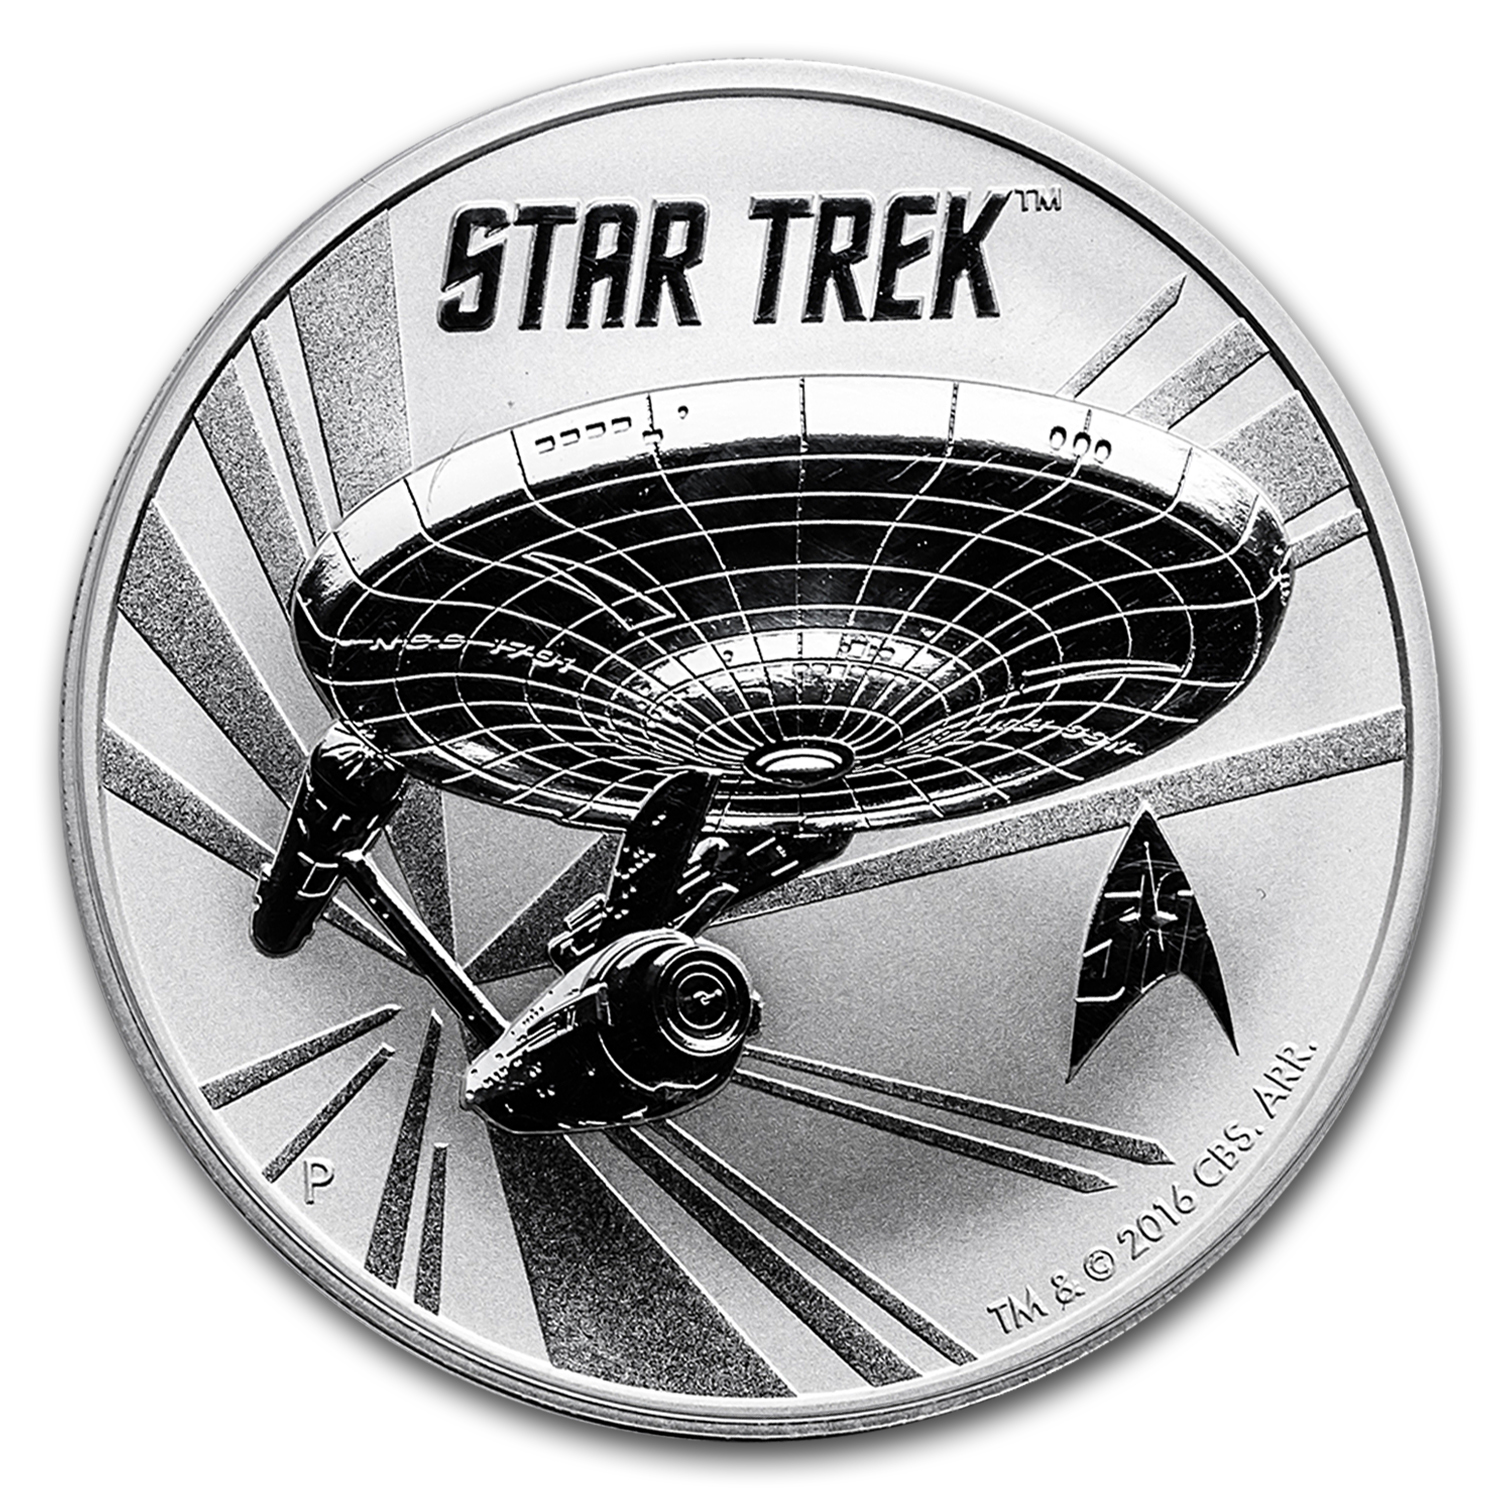 2016 Tuvalu 1 oz Silver Star Trek: Original U.S.S. Enterprise BU